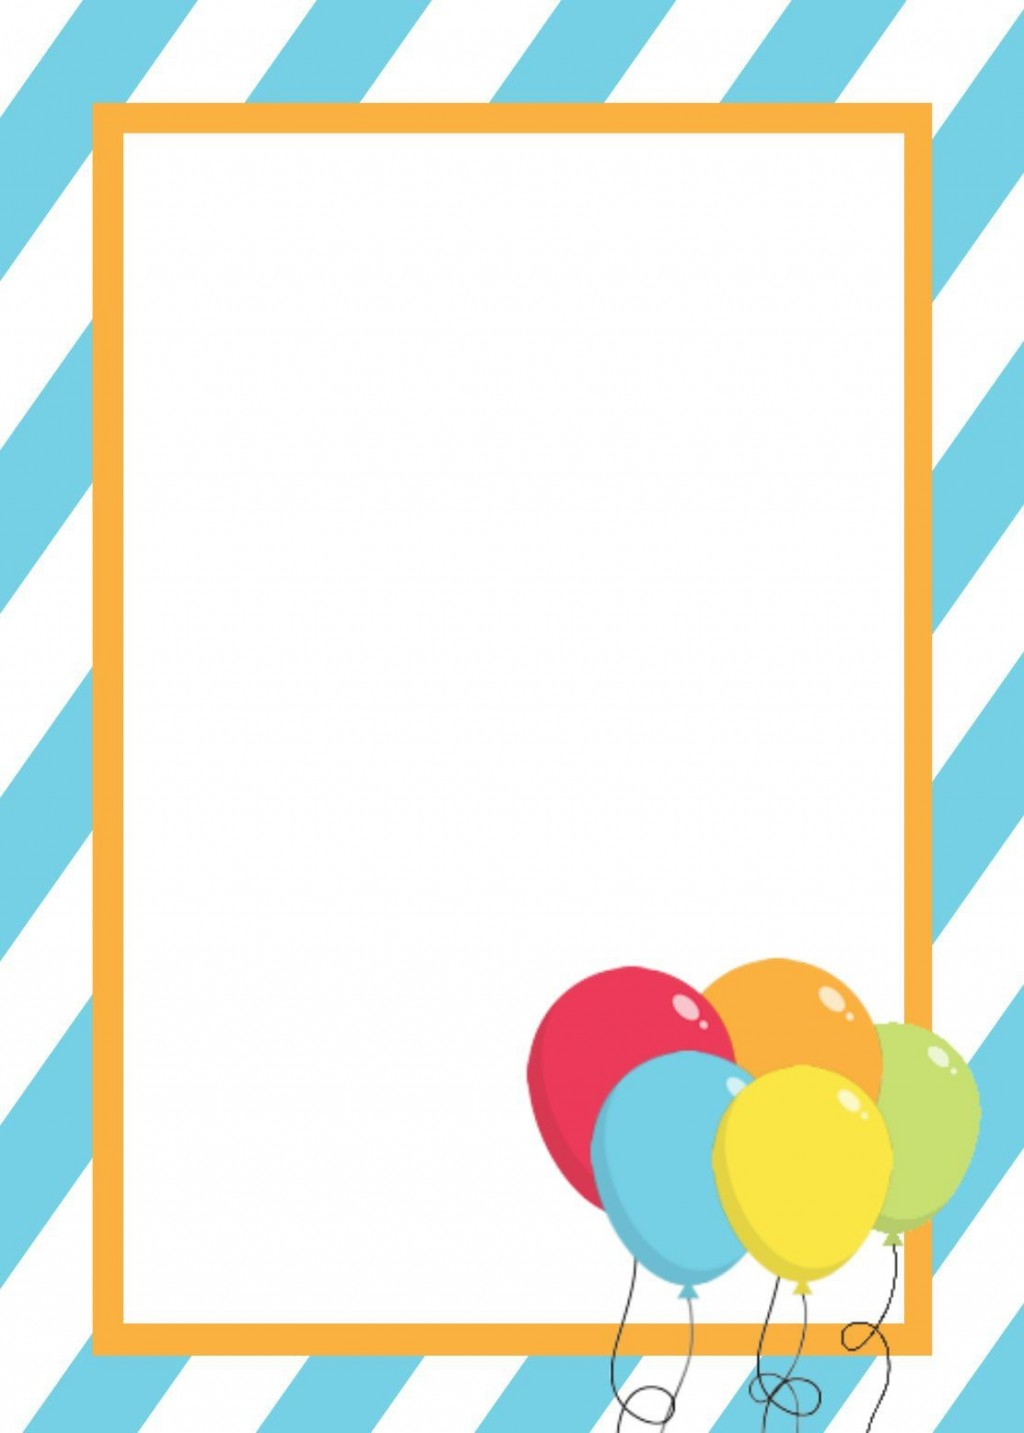 001 Incredible Free Birthday Party Invitation Template For Word Idea Large